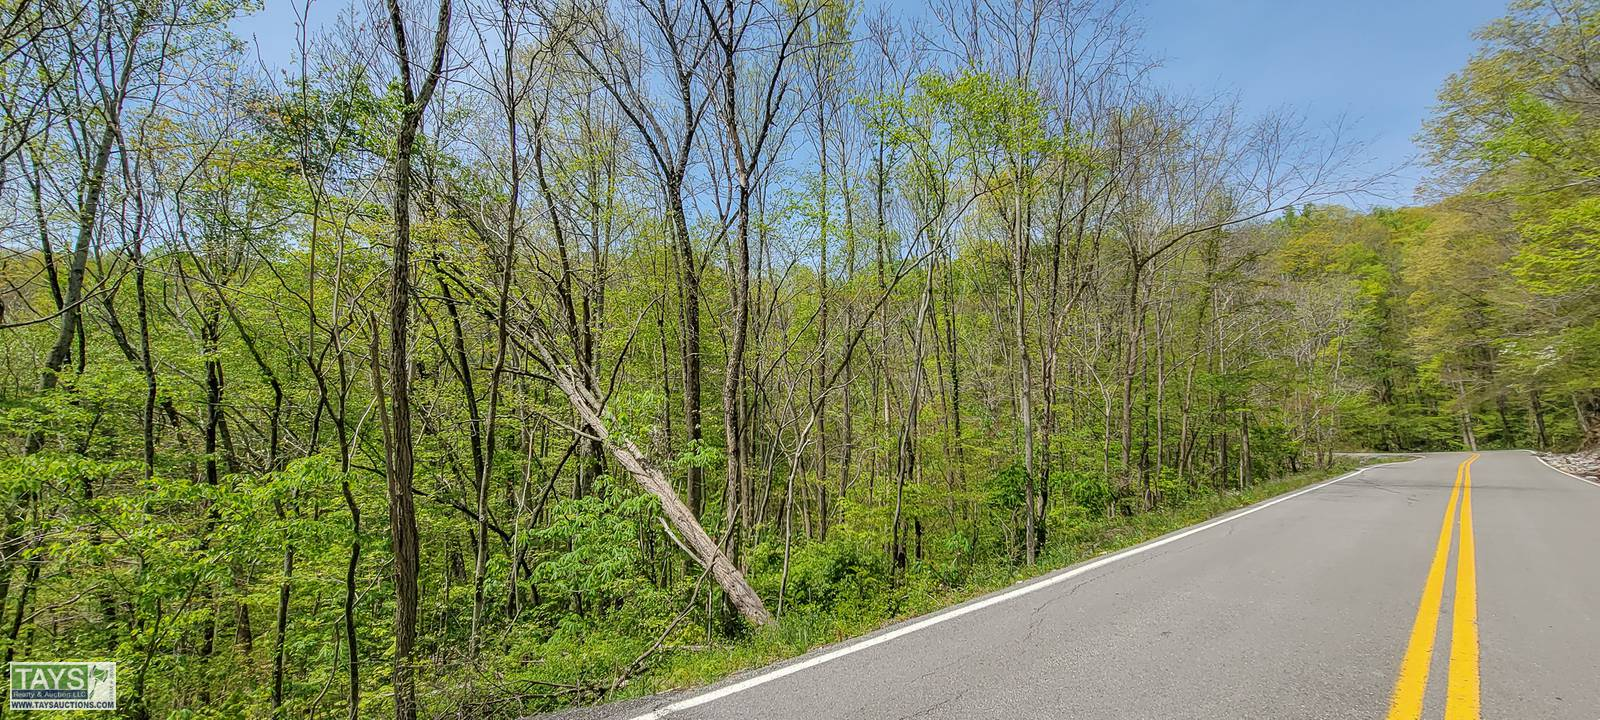 ONLINE ABSOLUTE TIMBER AUCTION: 69.25 Ac± of STANDING TIMBER